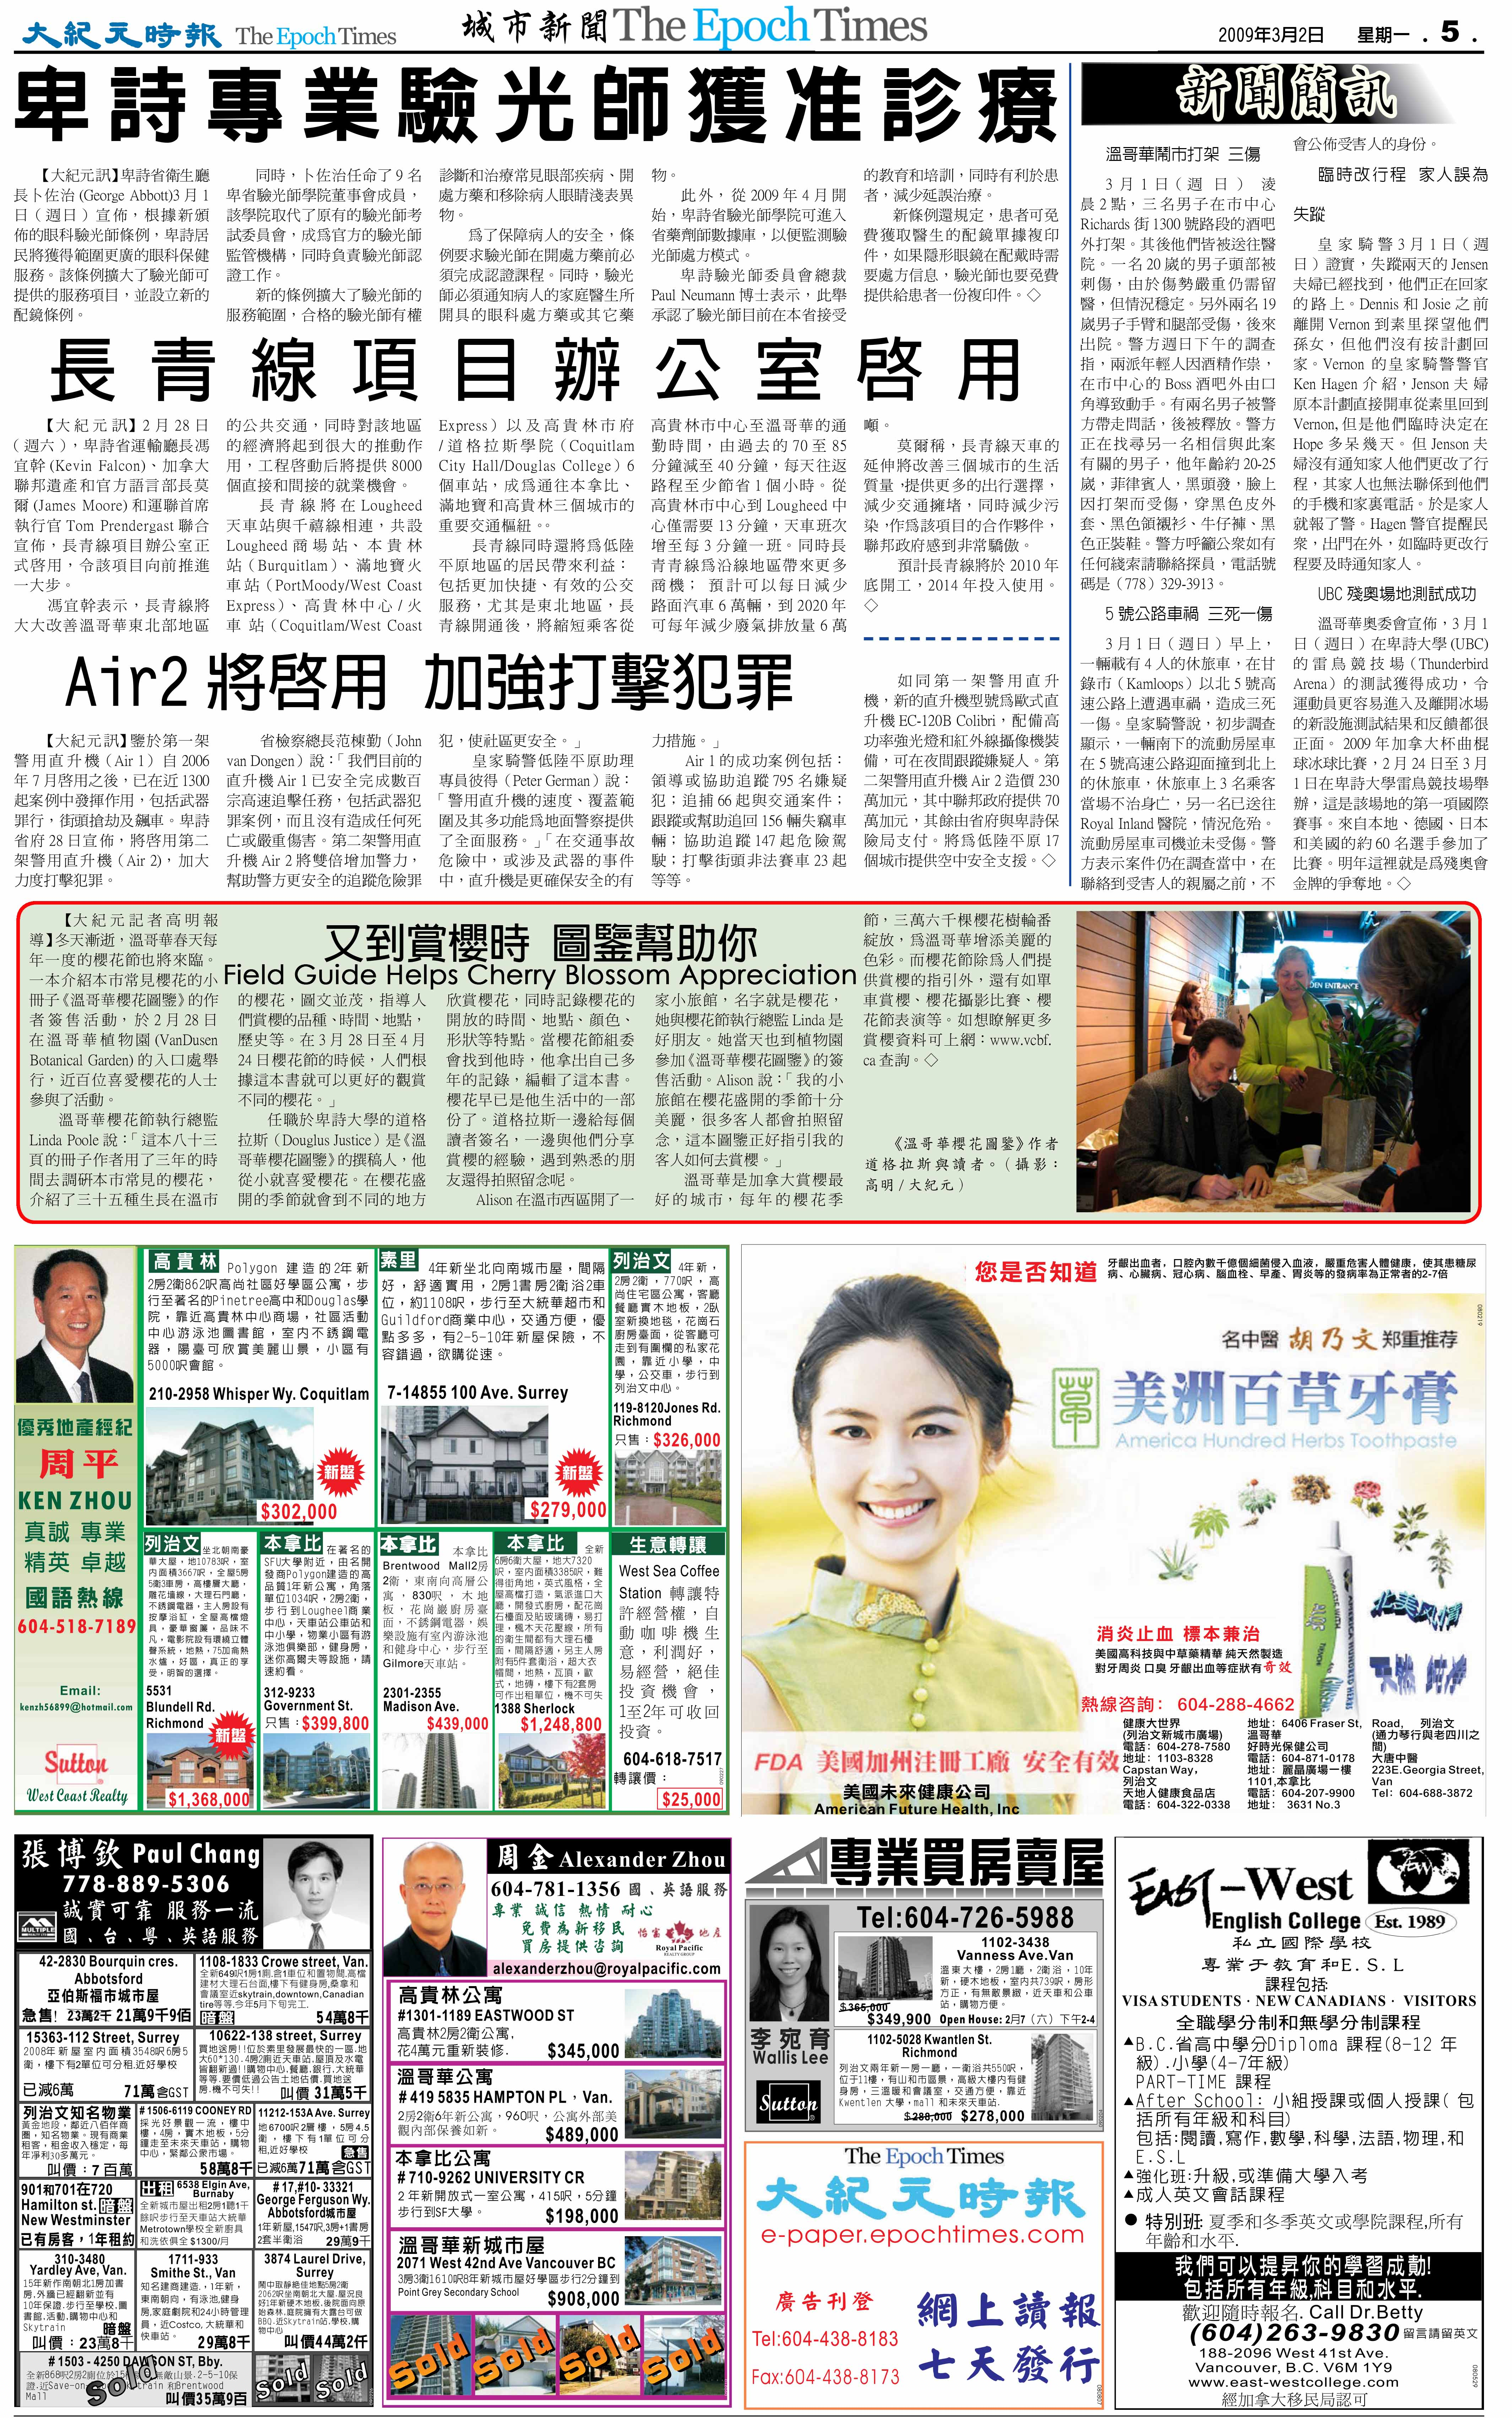 The Epoch Times - March 2, 2009